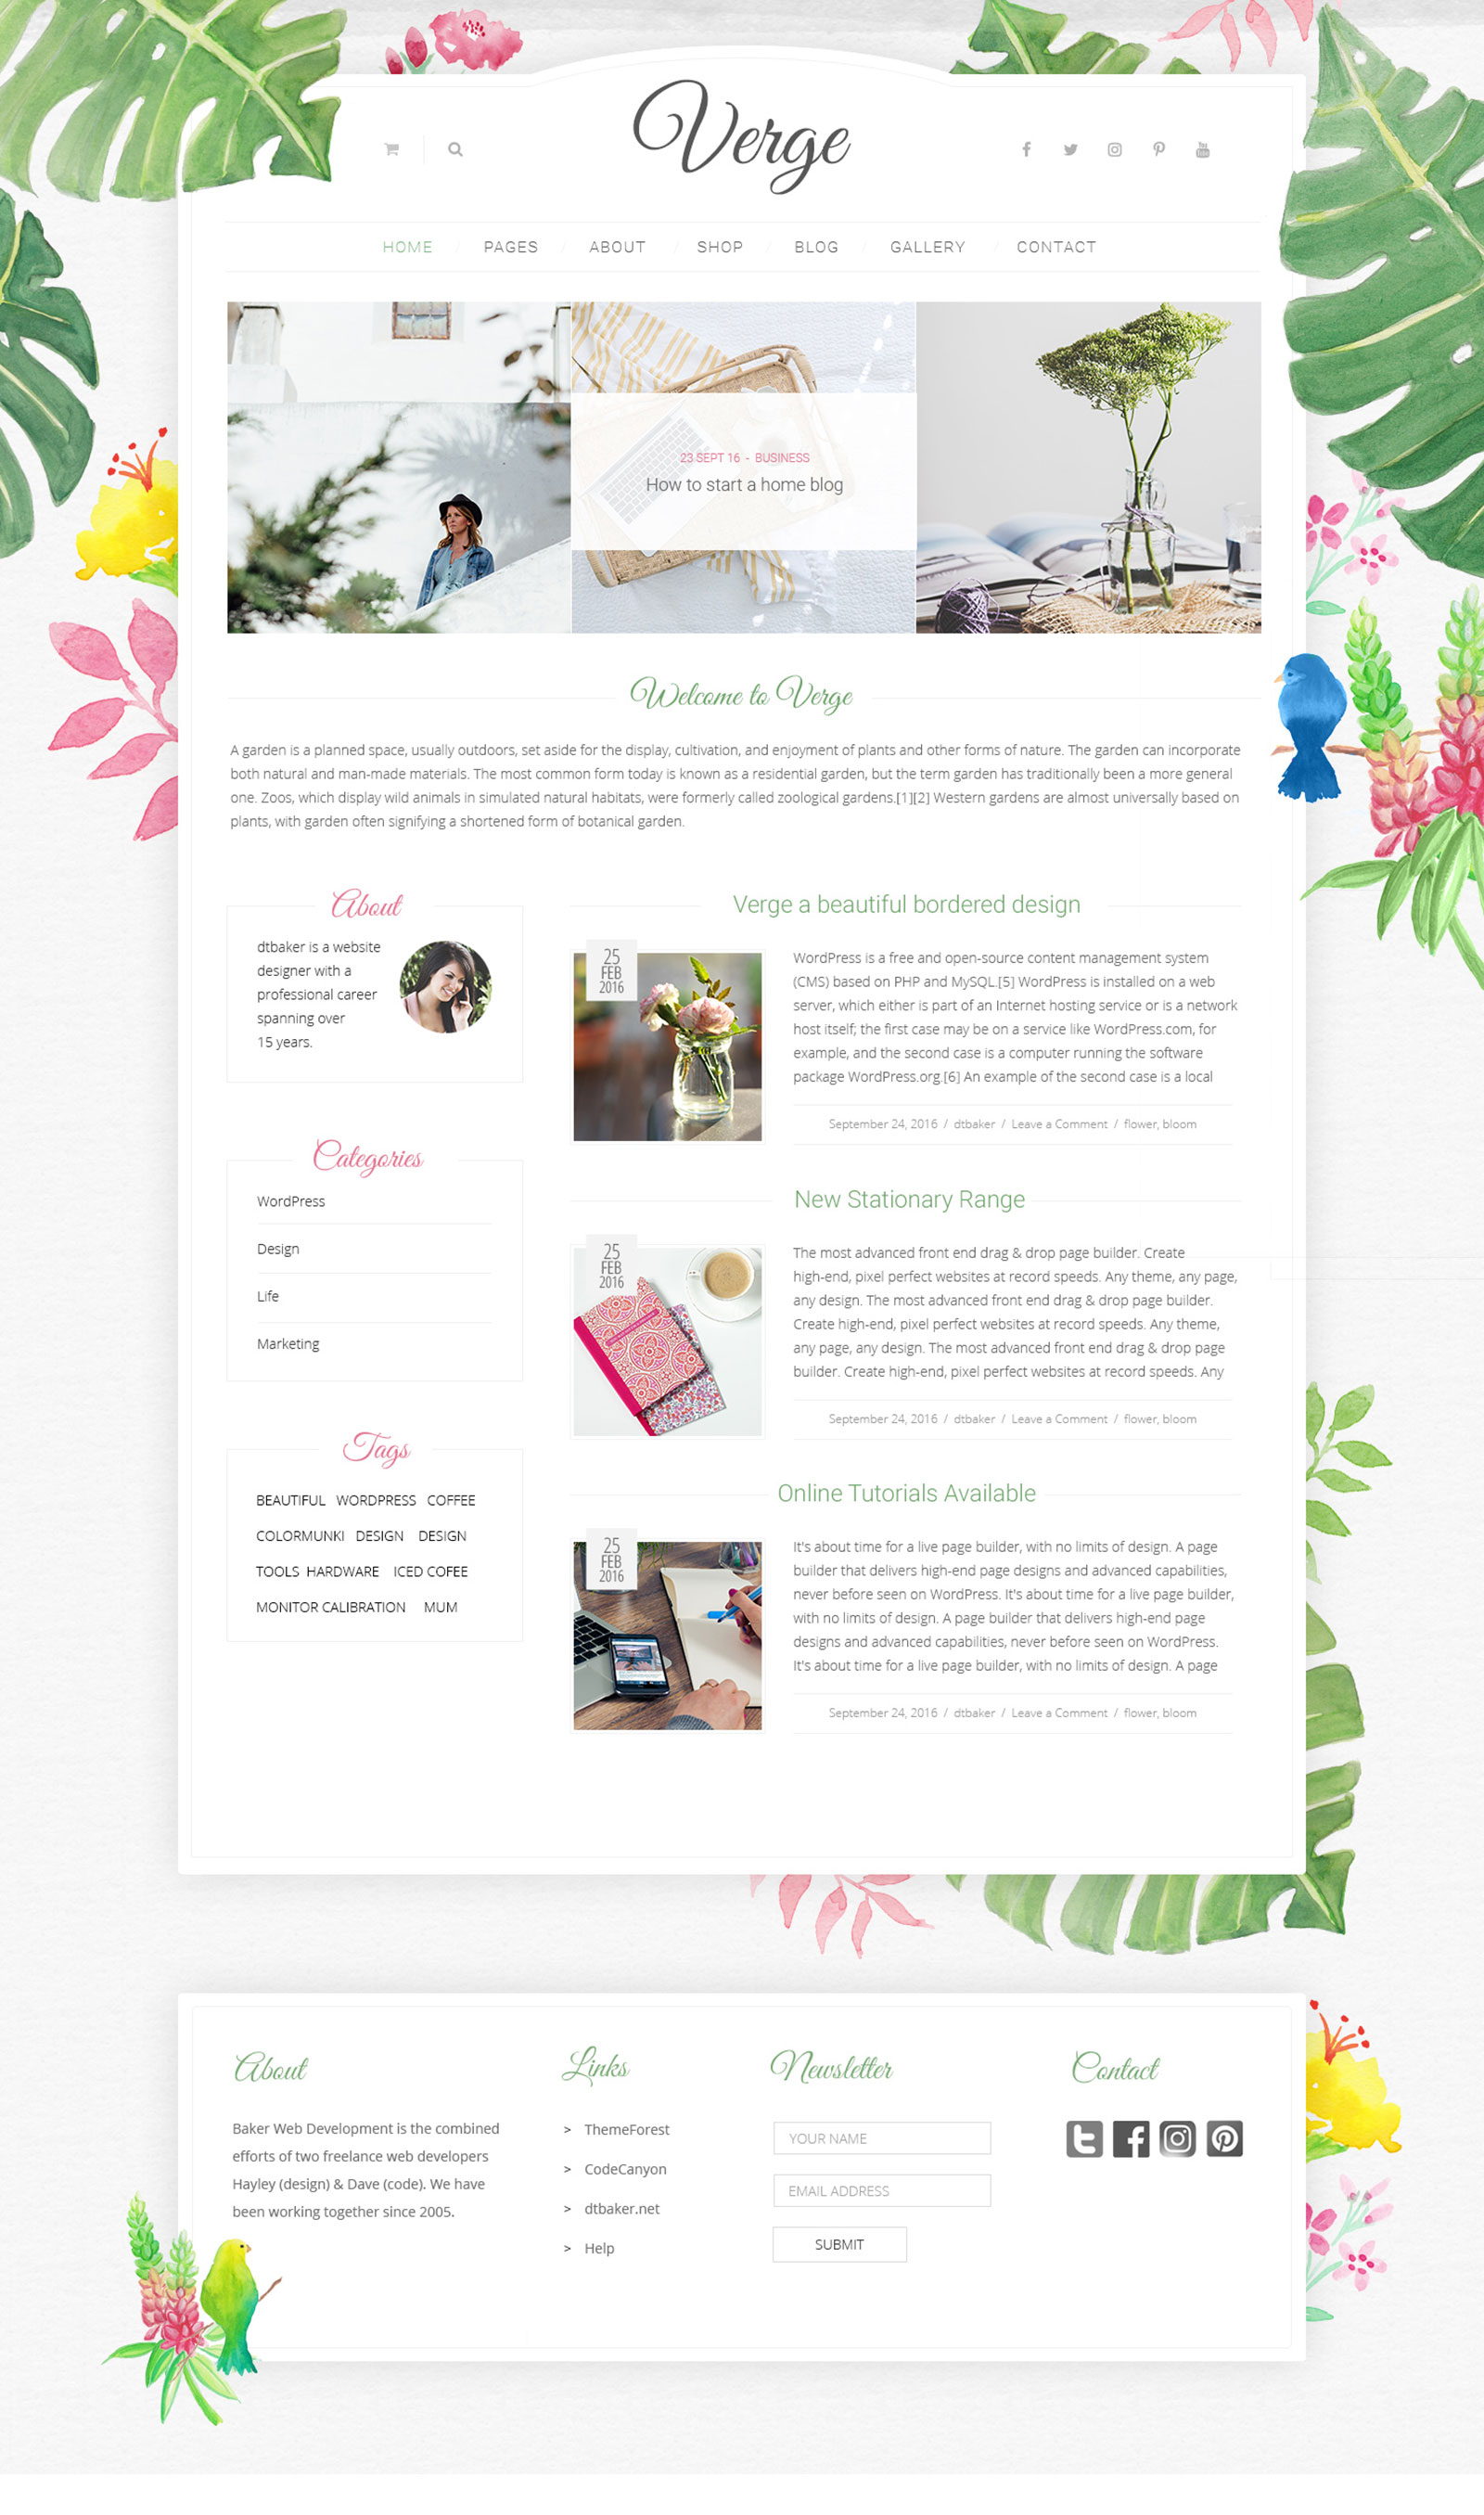 verge-wp-theme-by-dtbaker